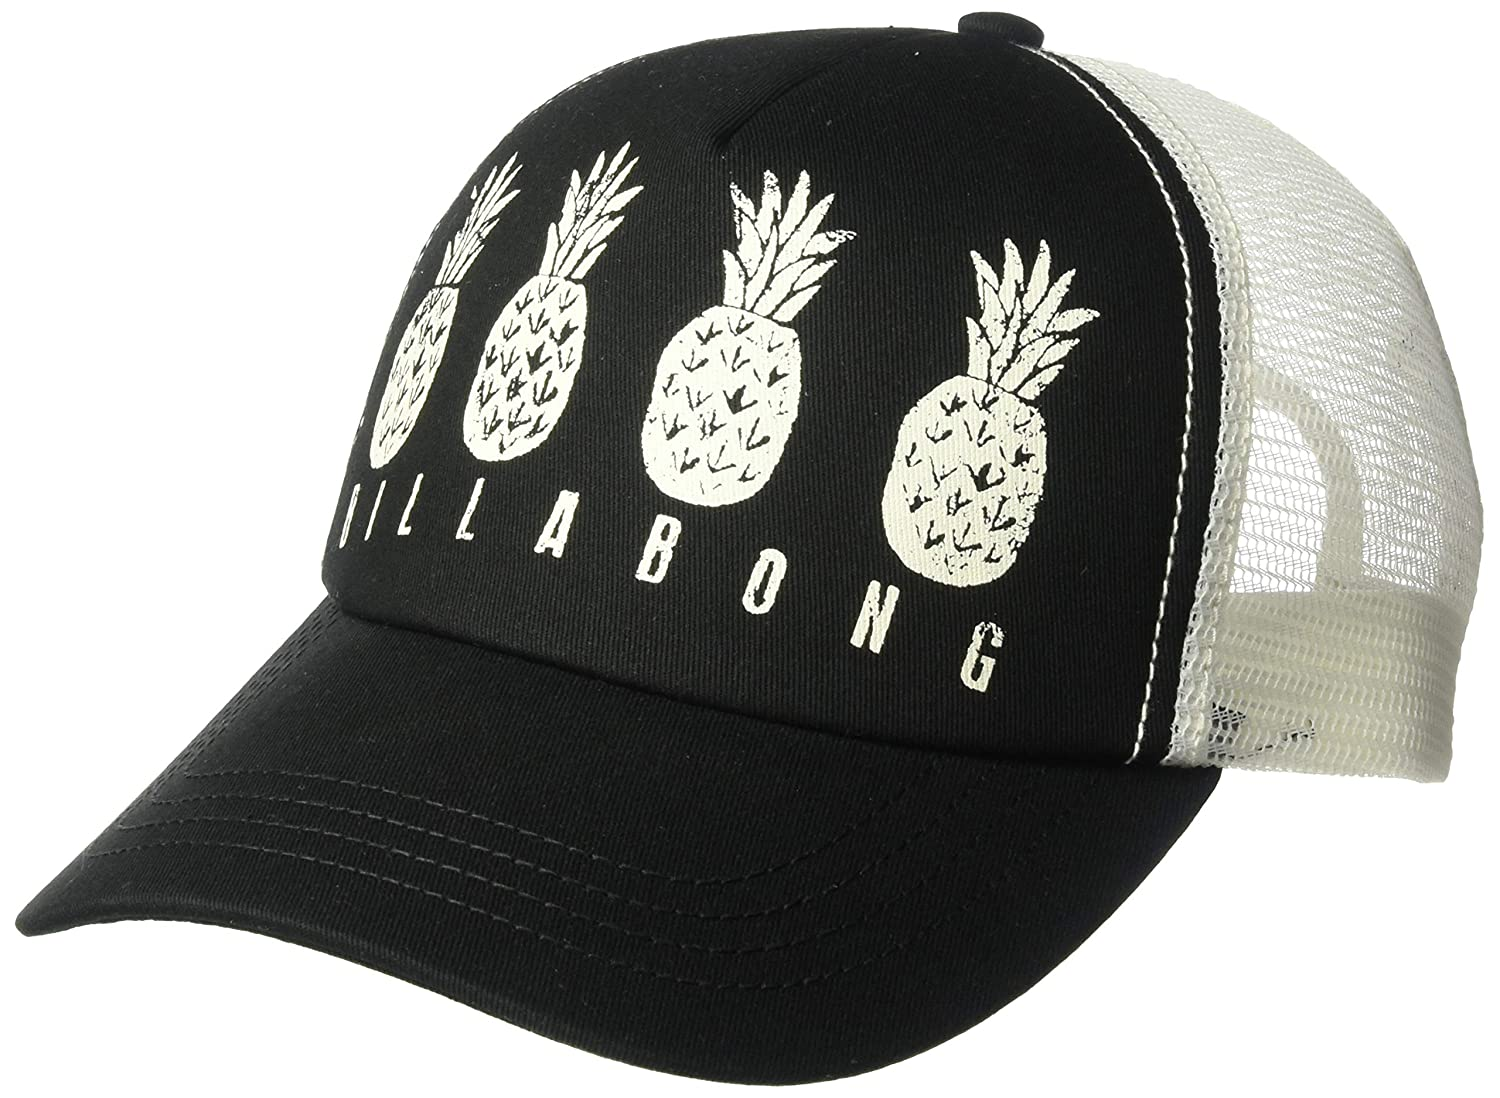 Billabong Womens Trucker Hat: Amazon.es: Ropa y accesorios